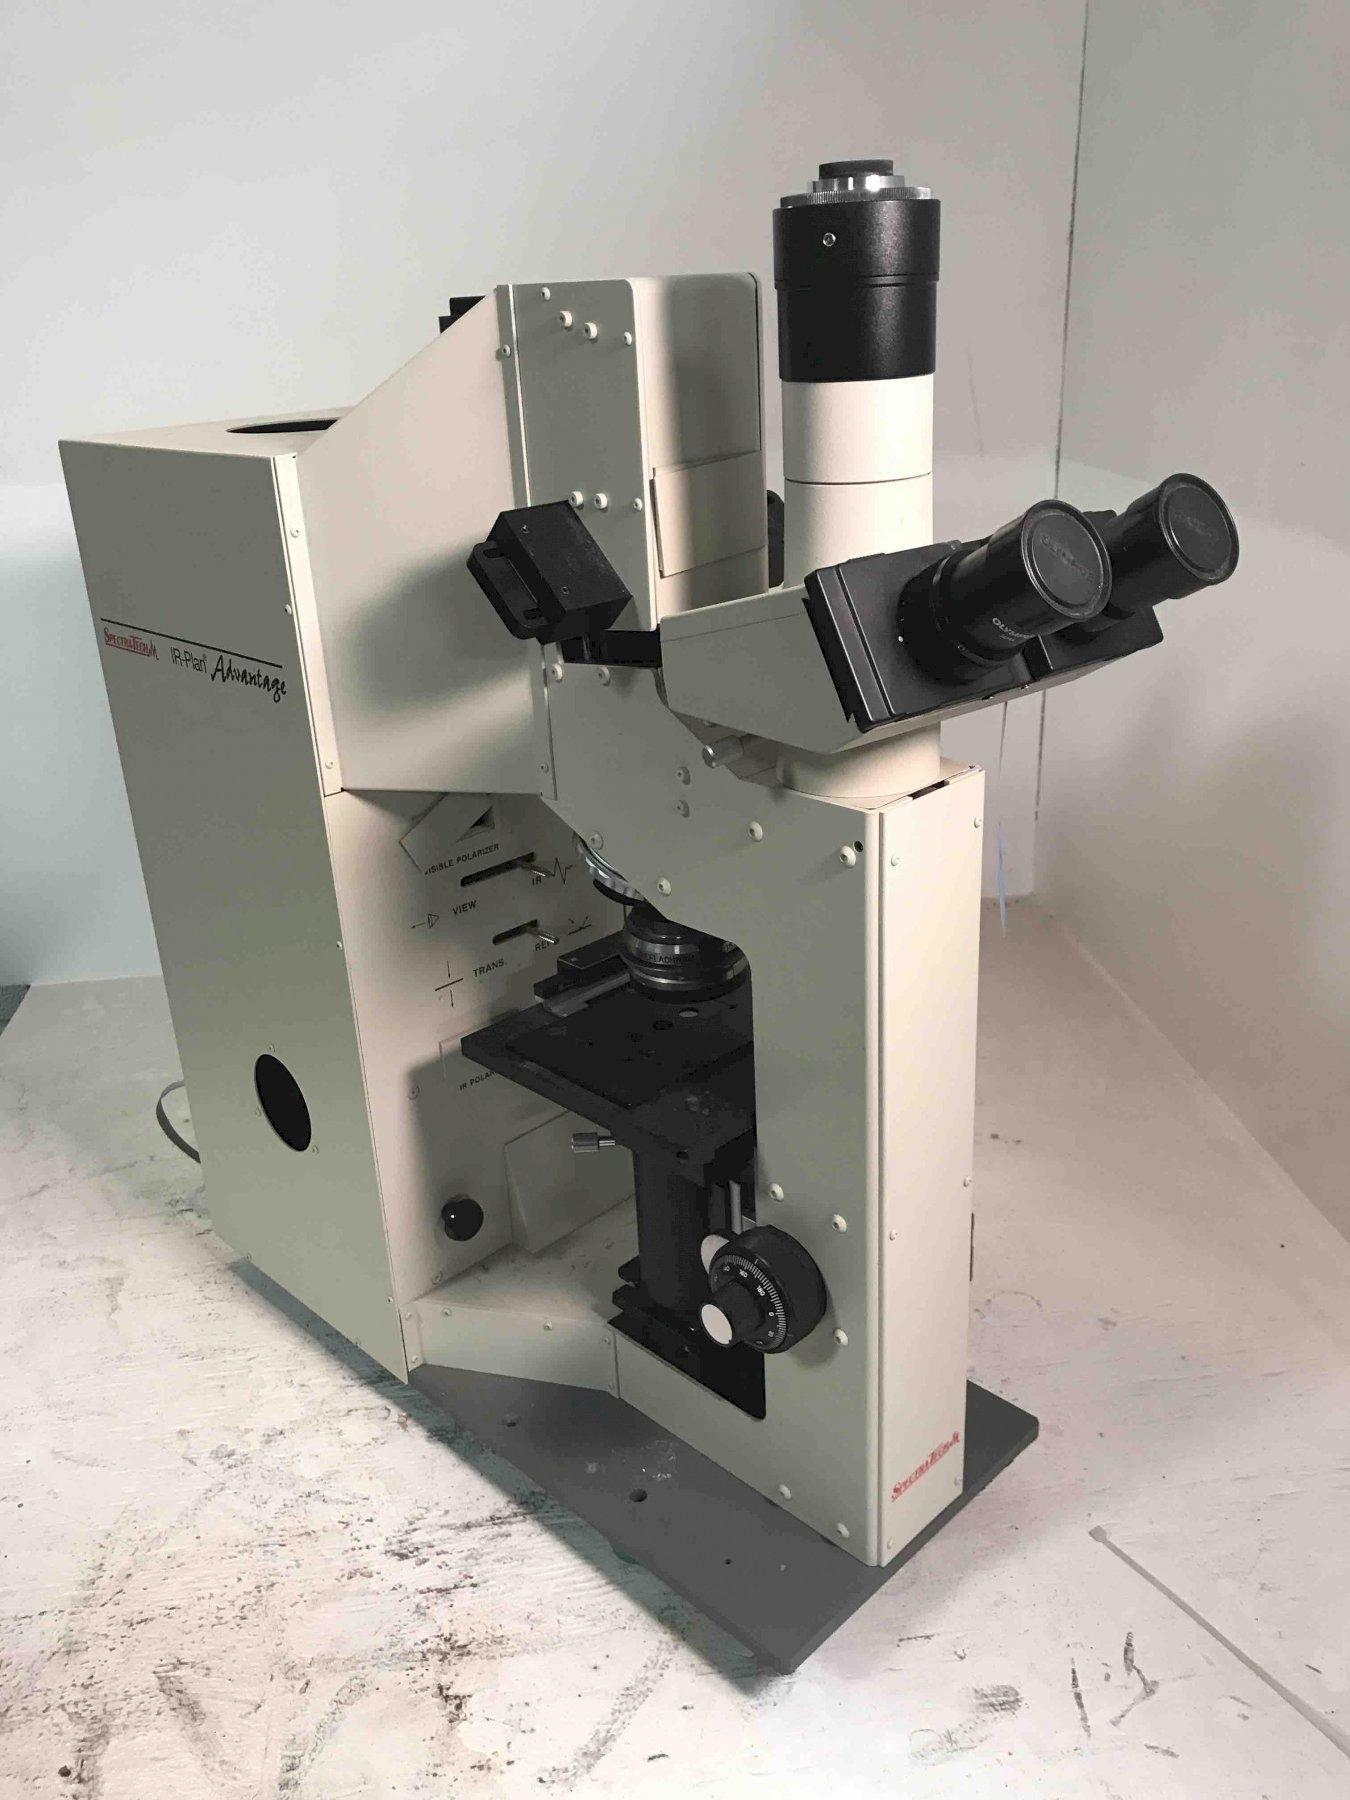 Spectra-Tech IR-Plan Infrared analytical Microscope MODEL 912A0366